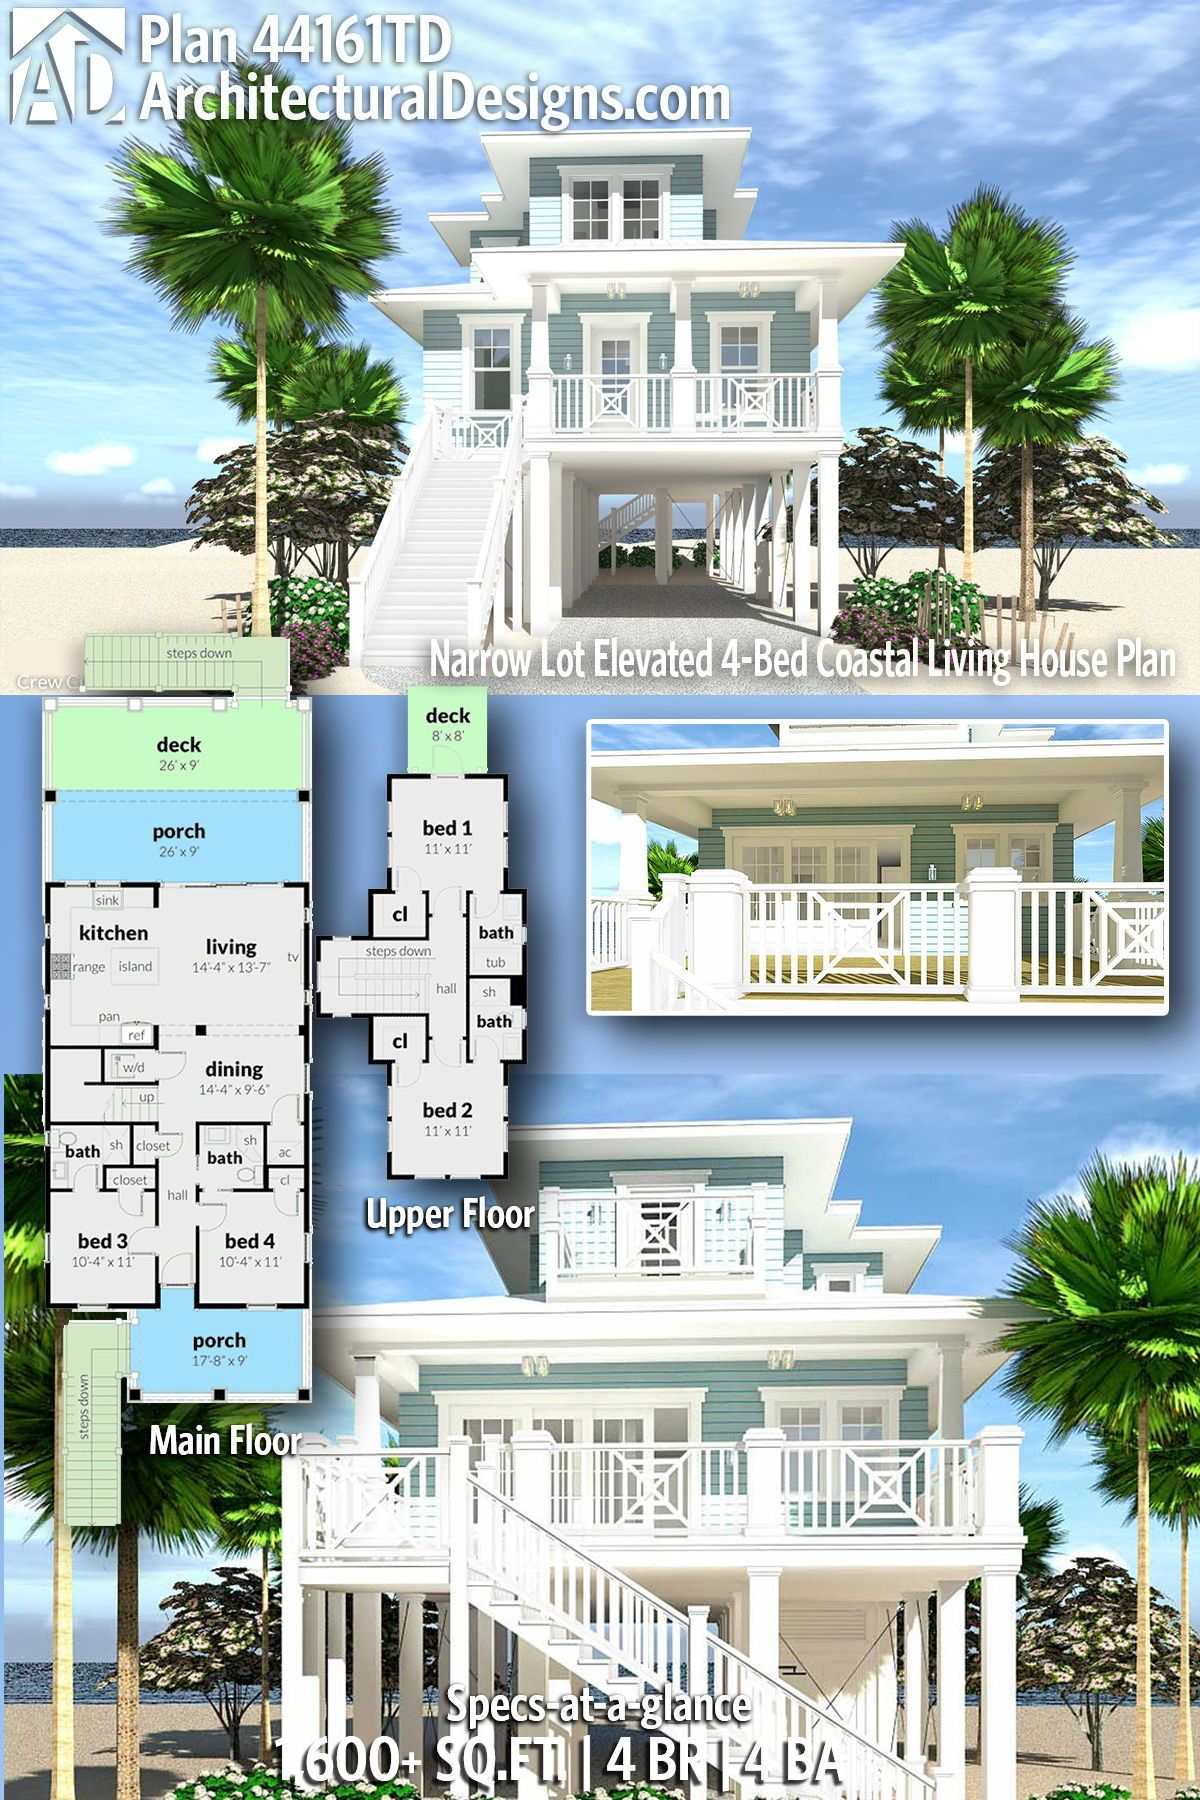 Plan 44161td Narrow Lot Elevated 4 Bed Coastal Living House Plan Beach House Floor Plans Beach House Plans Beach House Exterior